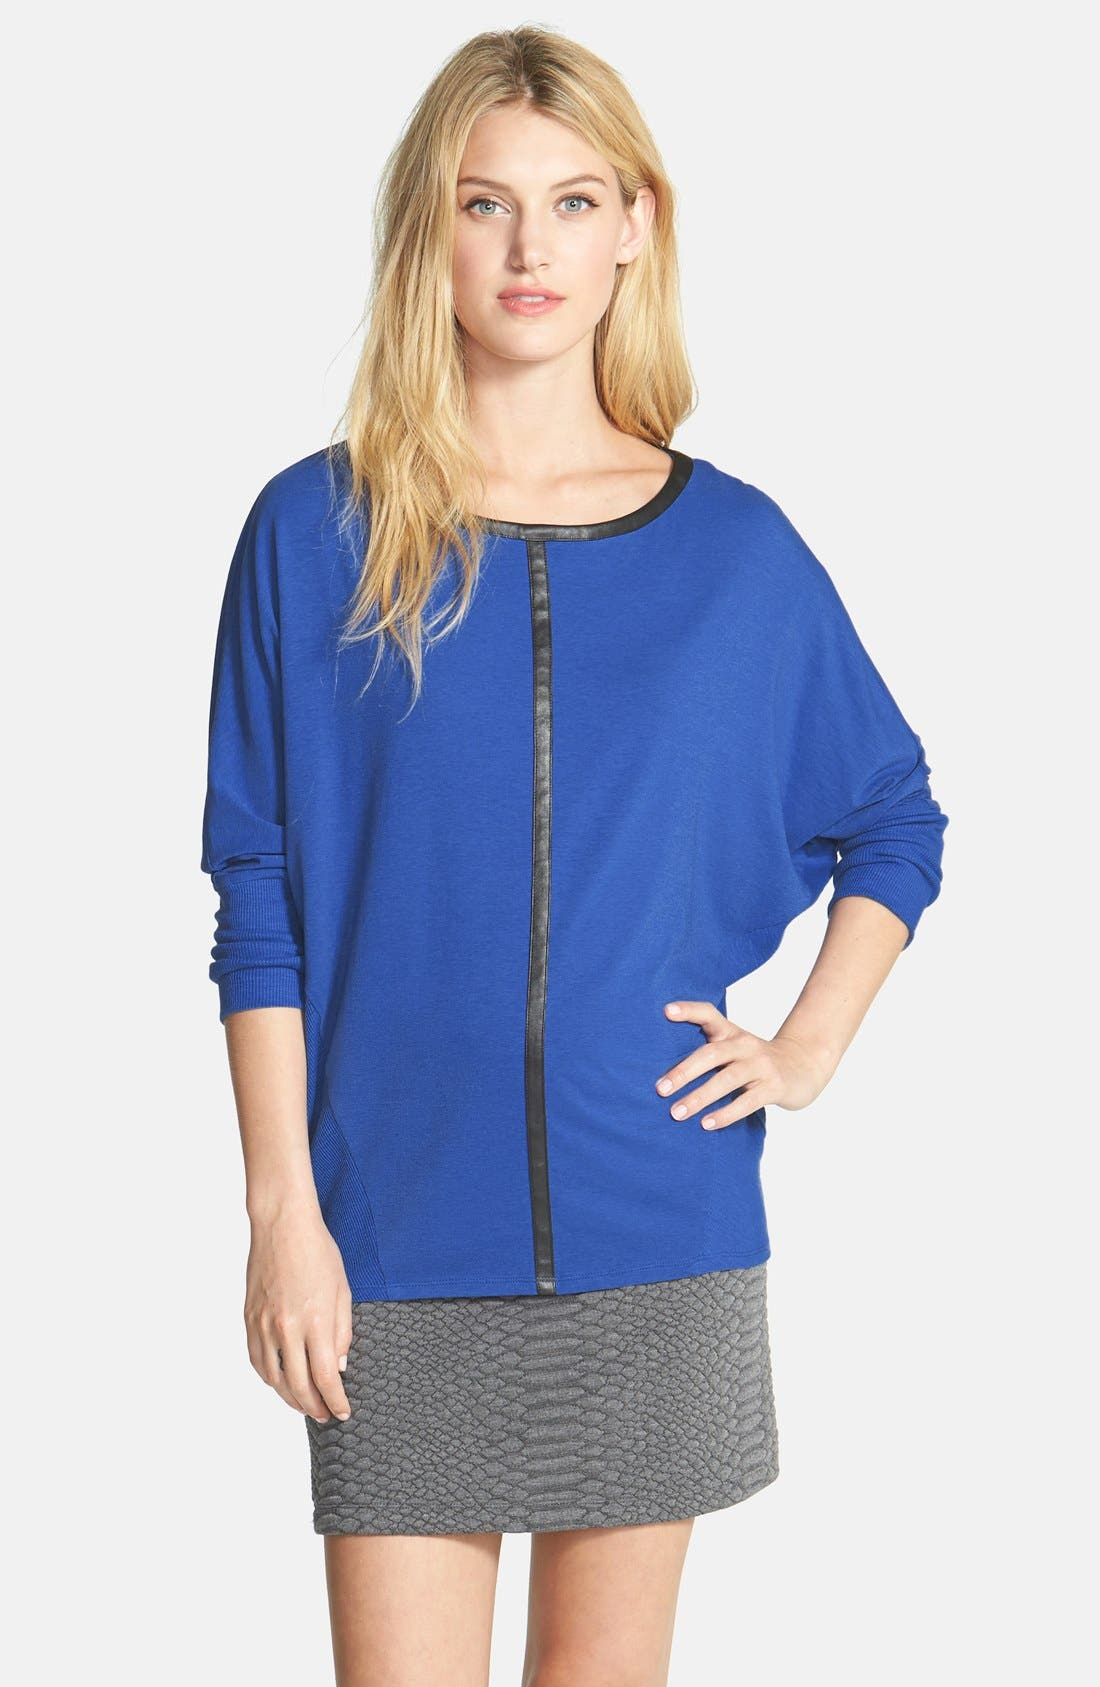 Alternate Image 1 Selected - Two by Vince Camuto 'Saturday' Faux Leather Trim Top